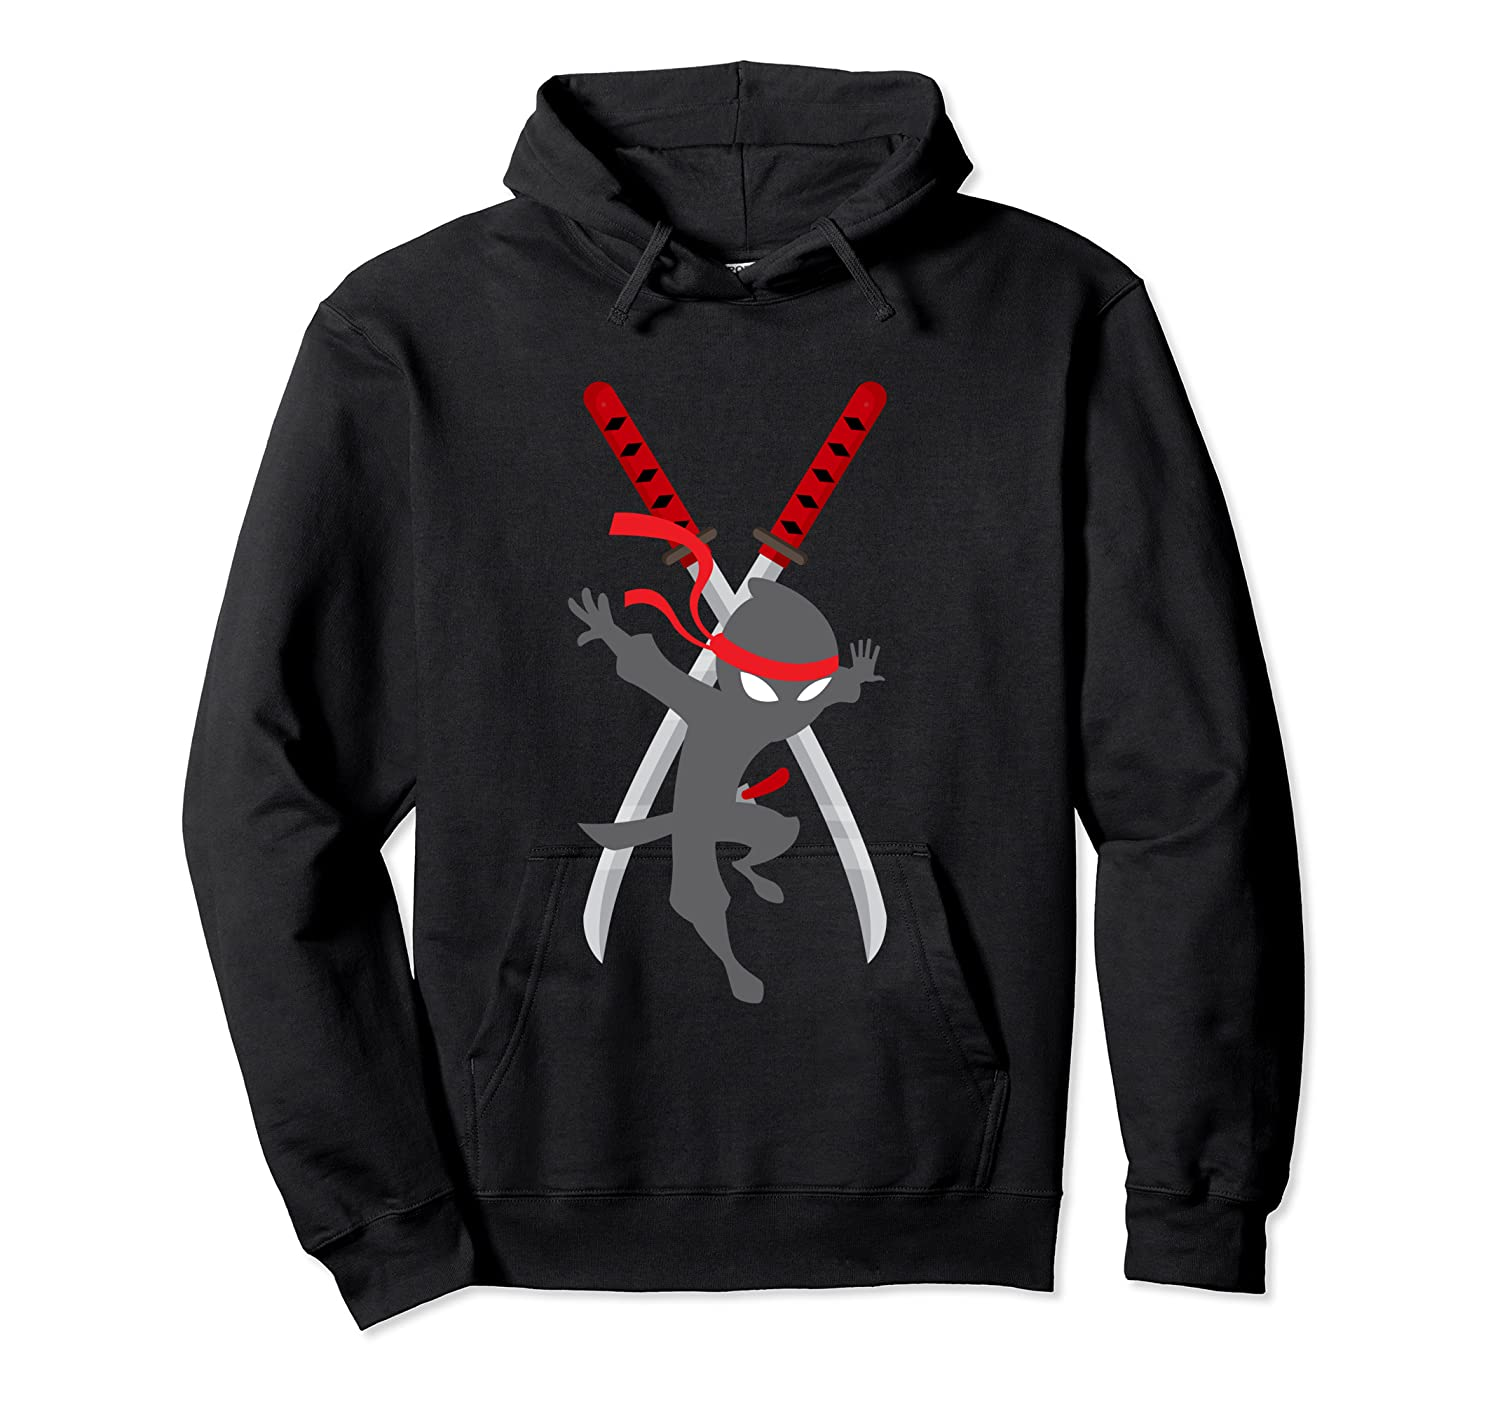 Cwc Chad Wild Ninja Swords T Shirt For Clay Gift Unisex Pullover Hoodie